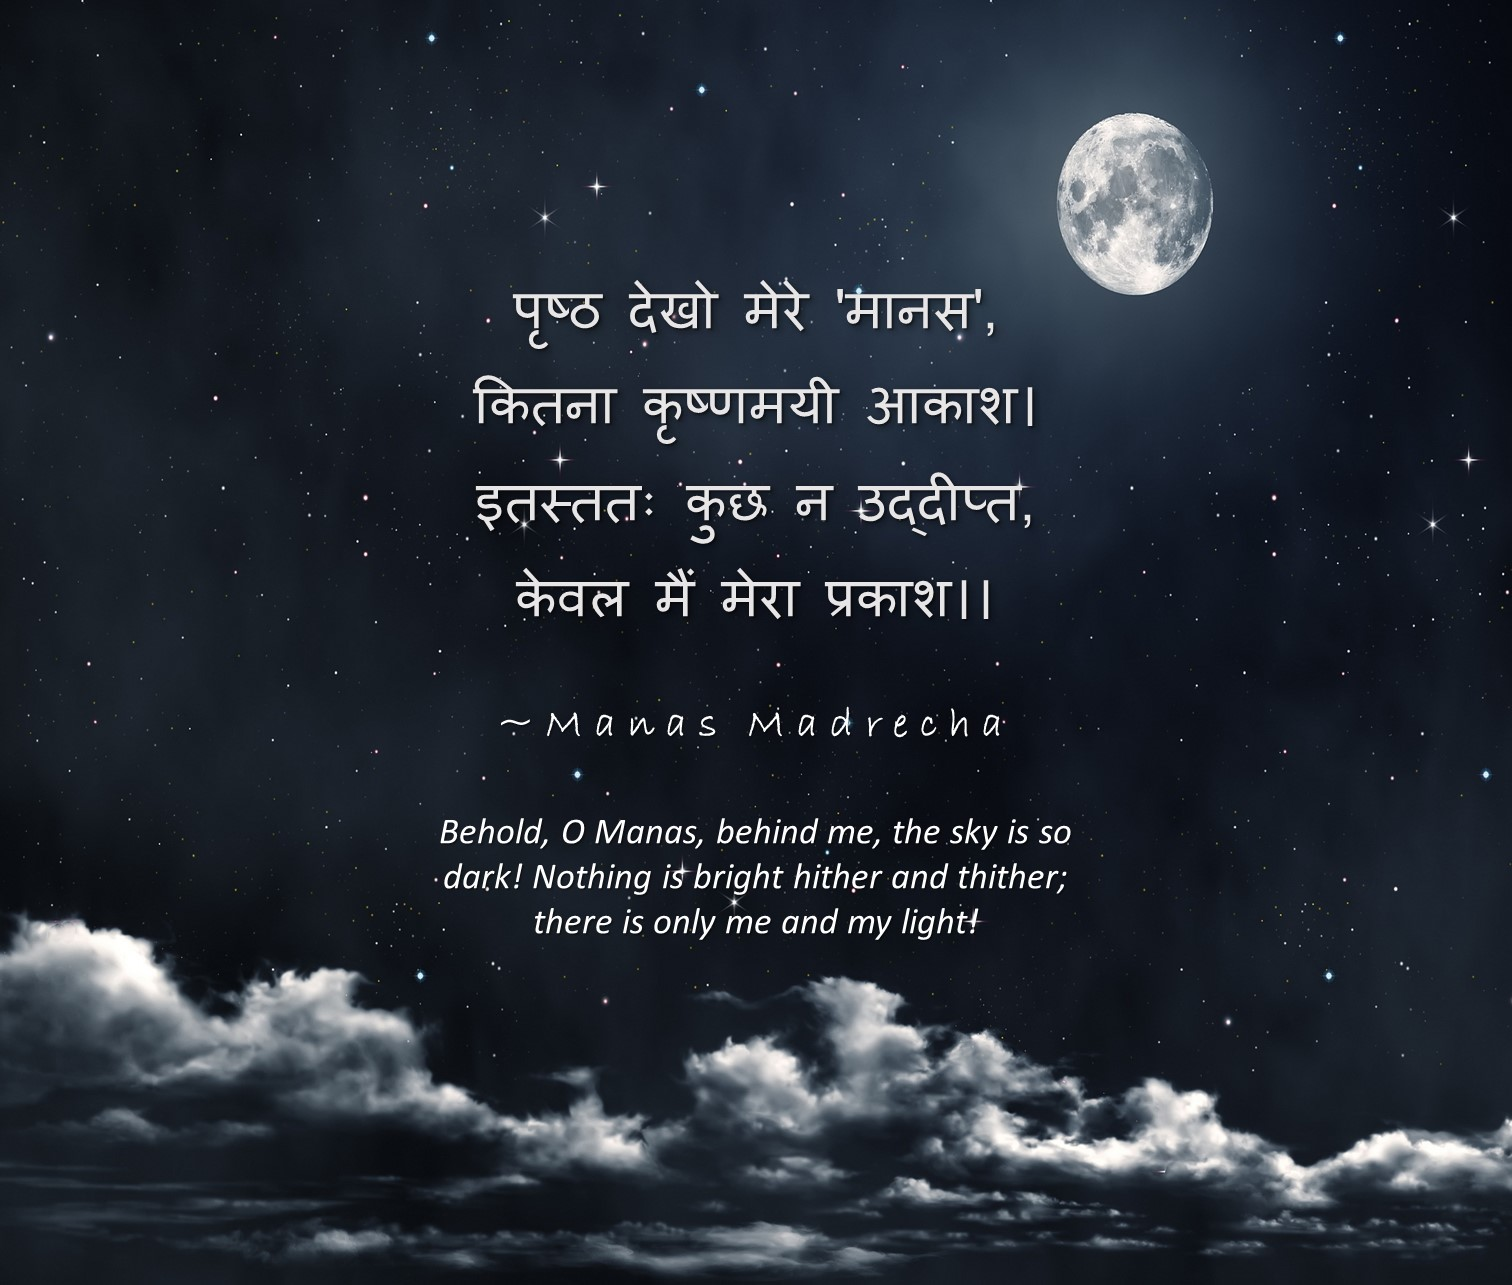 hindi poem on moon, poem on moon, moon quotes, moon sky, moon in night sky, moon in the sky with stars, starry sky, moon over clouds, moon shining, alone moon, Manas Madrecha, Manas Madrecha poems, Manas Madrecha quotes, Manas Madrecha stories, Manas Madrecha blog, simplifying universe, moon in space, full moon in night